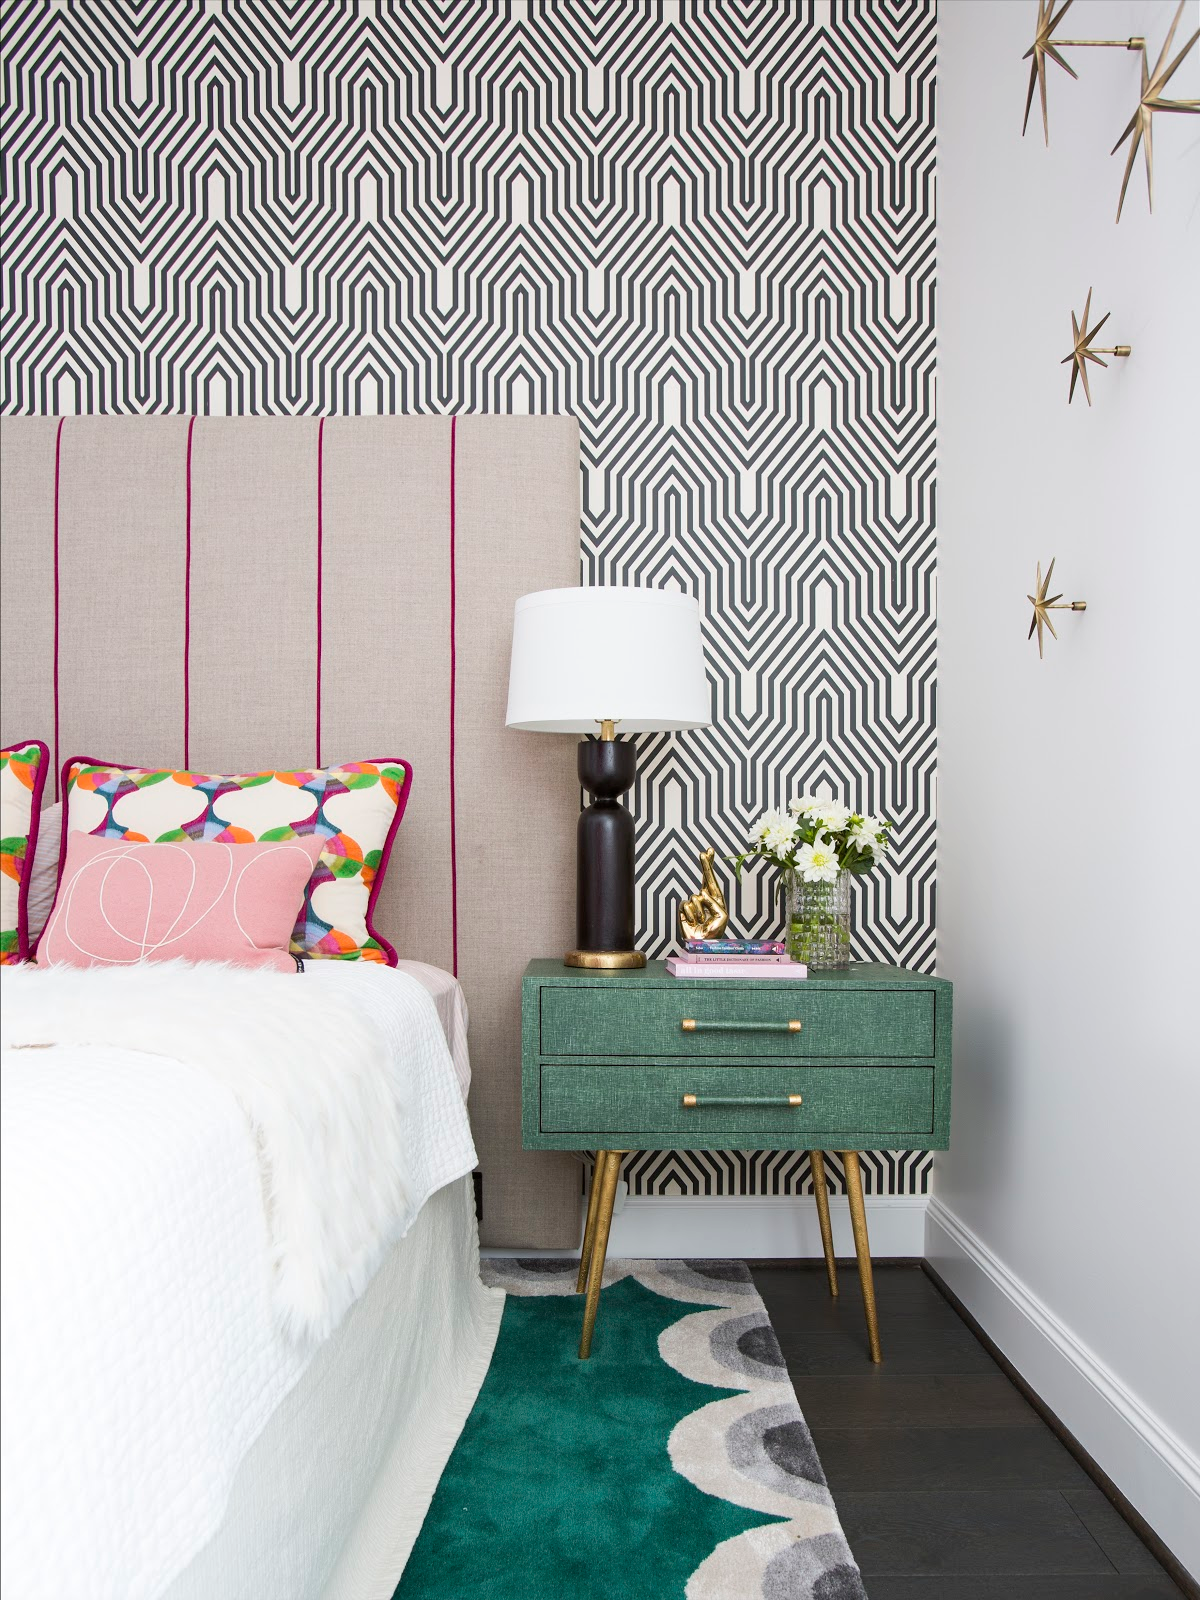 Geometric wallpaper covering as backdrop for custom pink stripe headboard in colorful guest bedroom - Laura U Interior Design